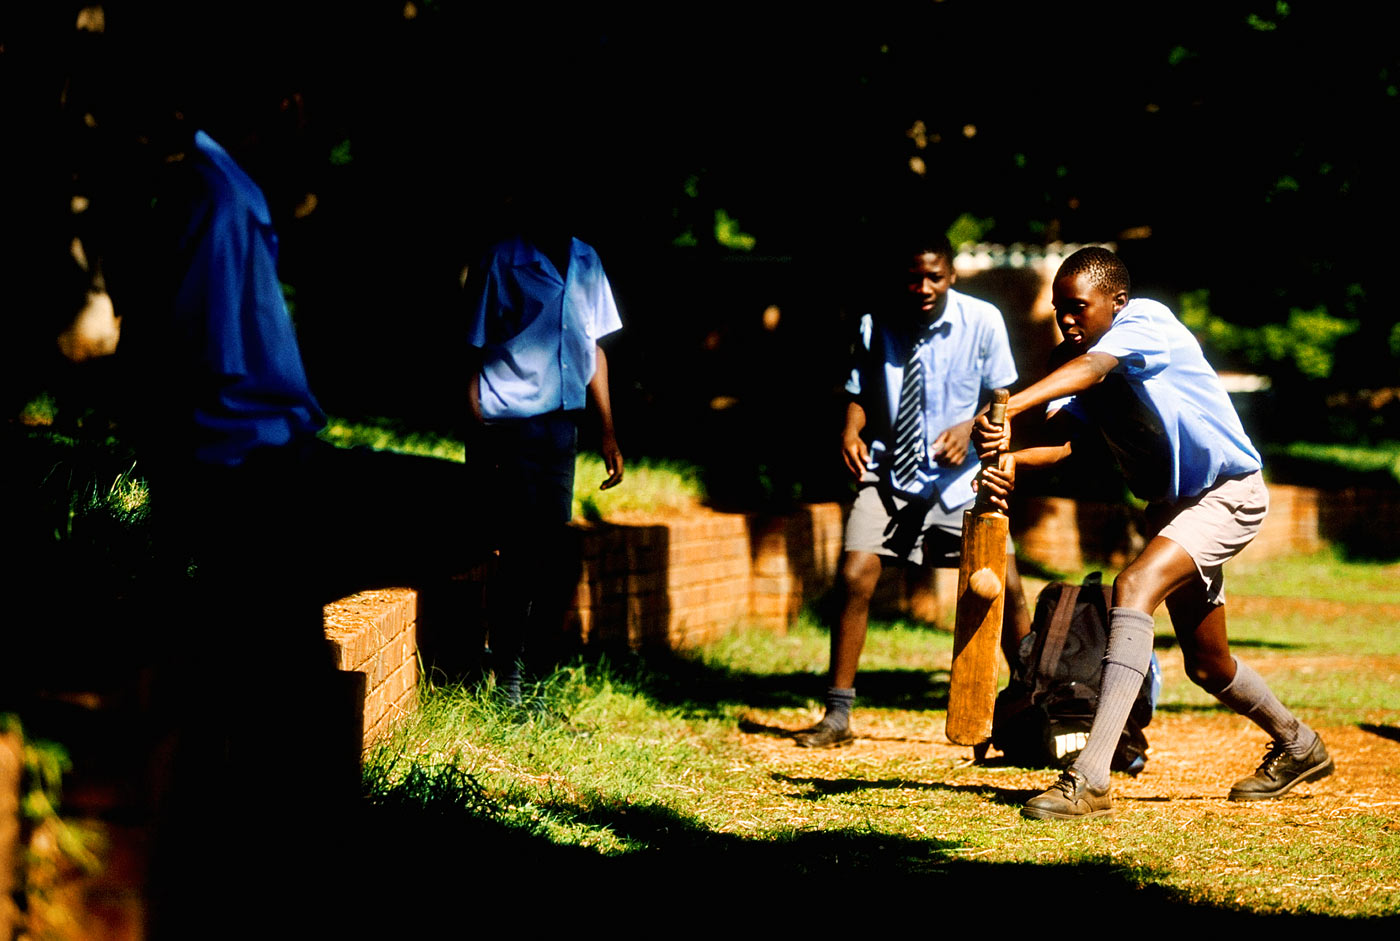 The healthy grass-roots development of cricket in Zimbabwe in the '90s is now a memory